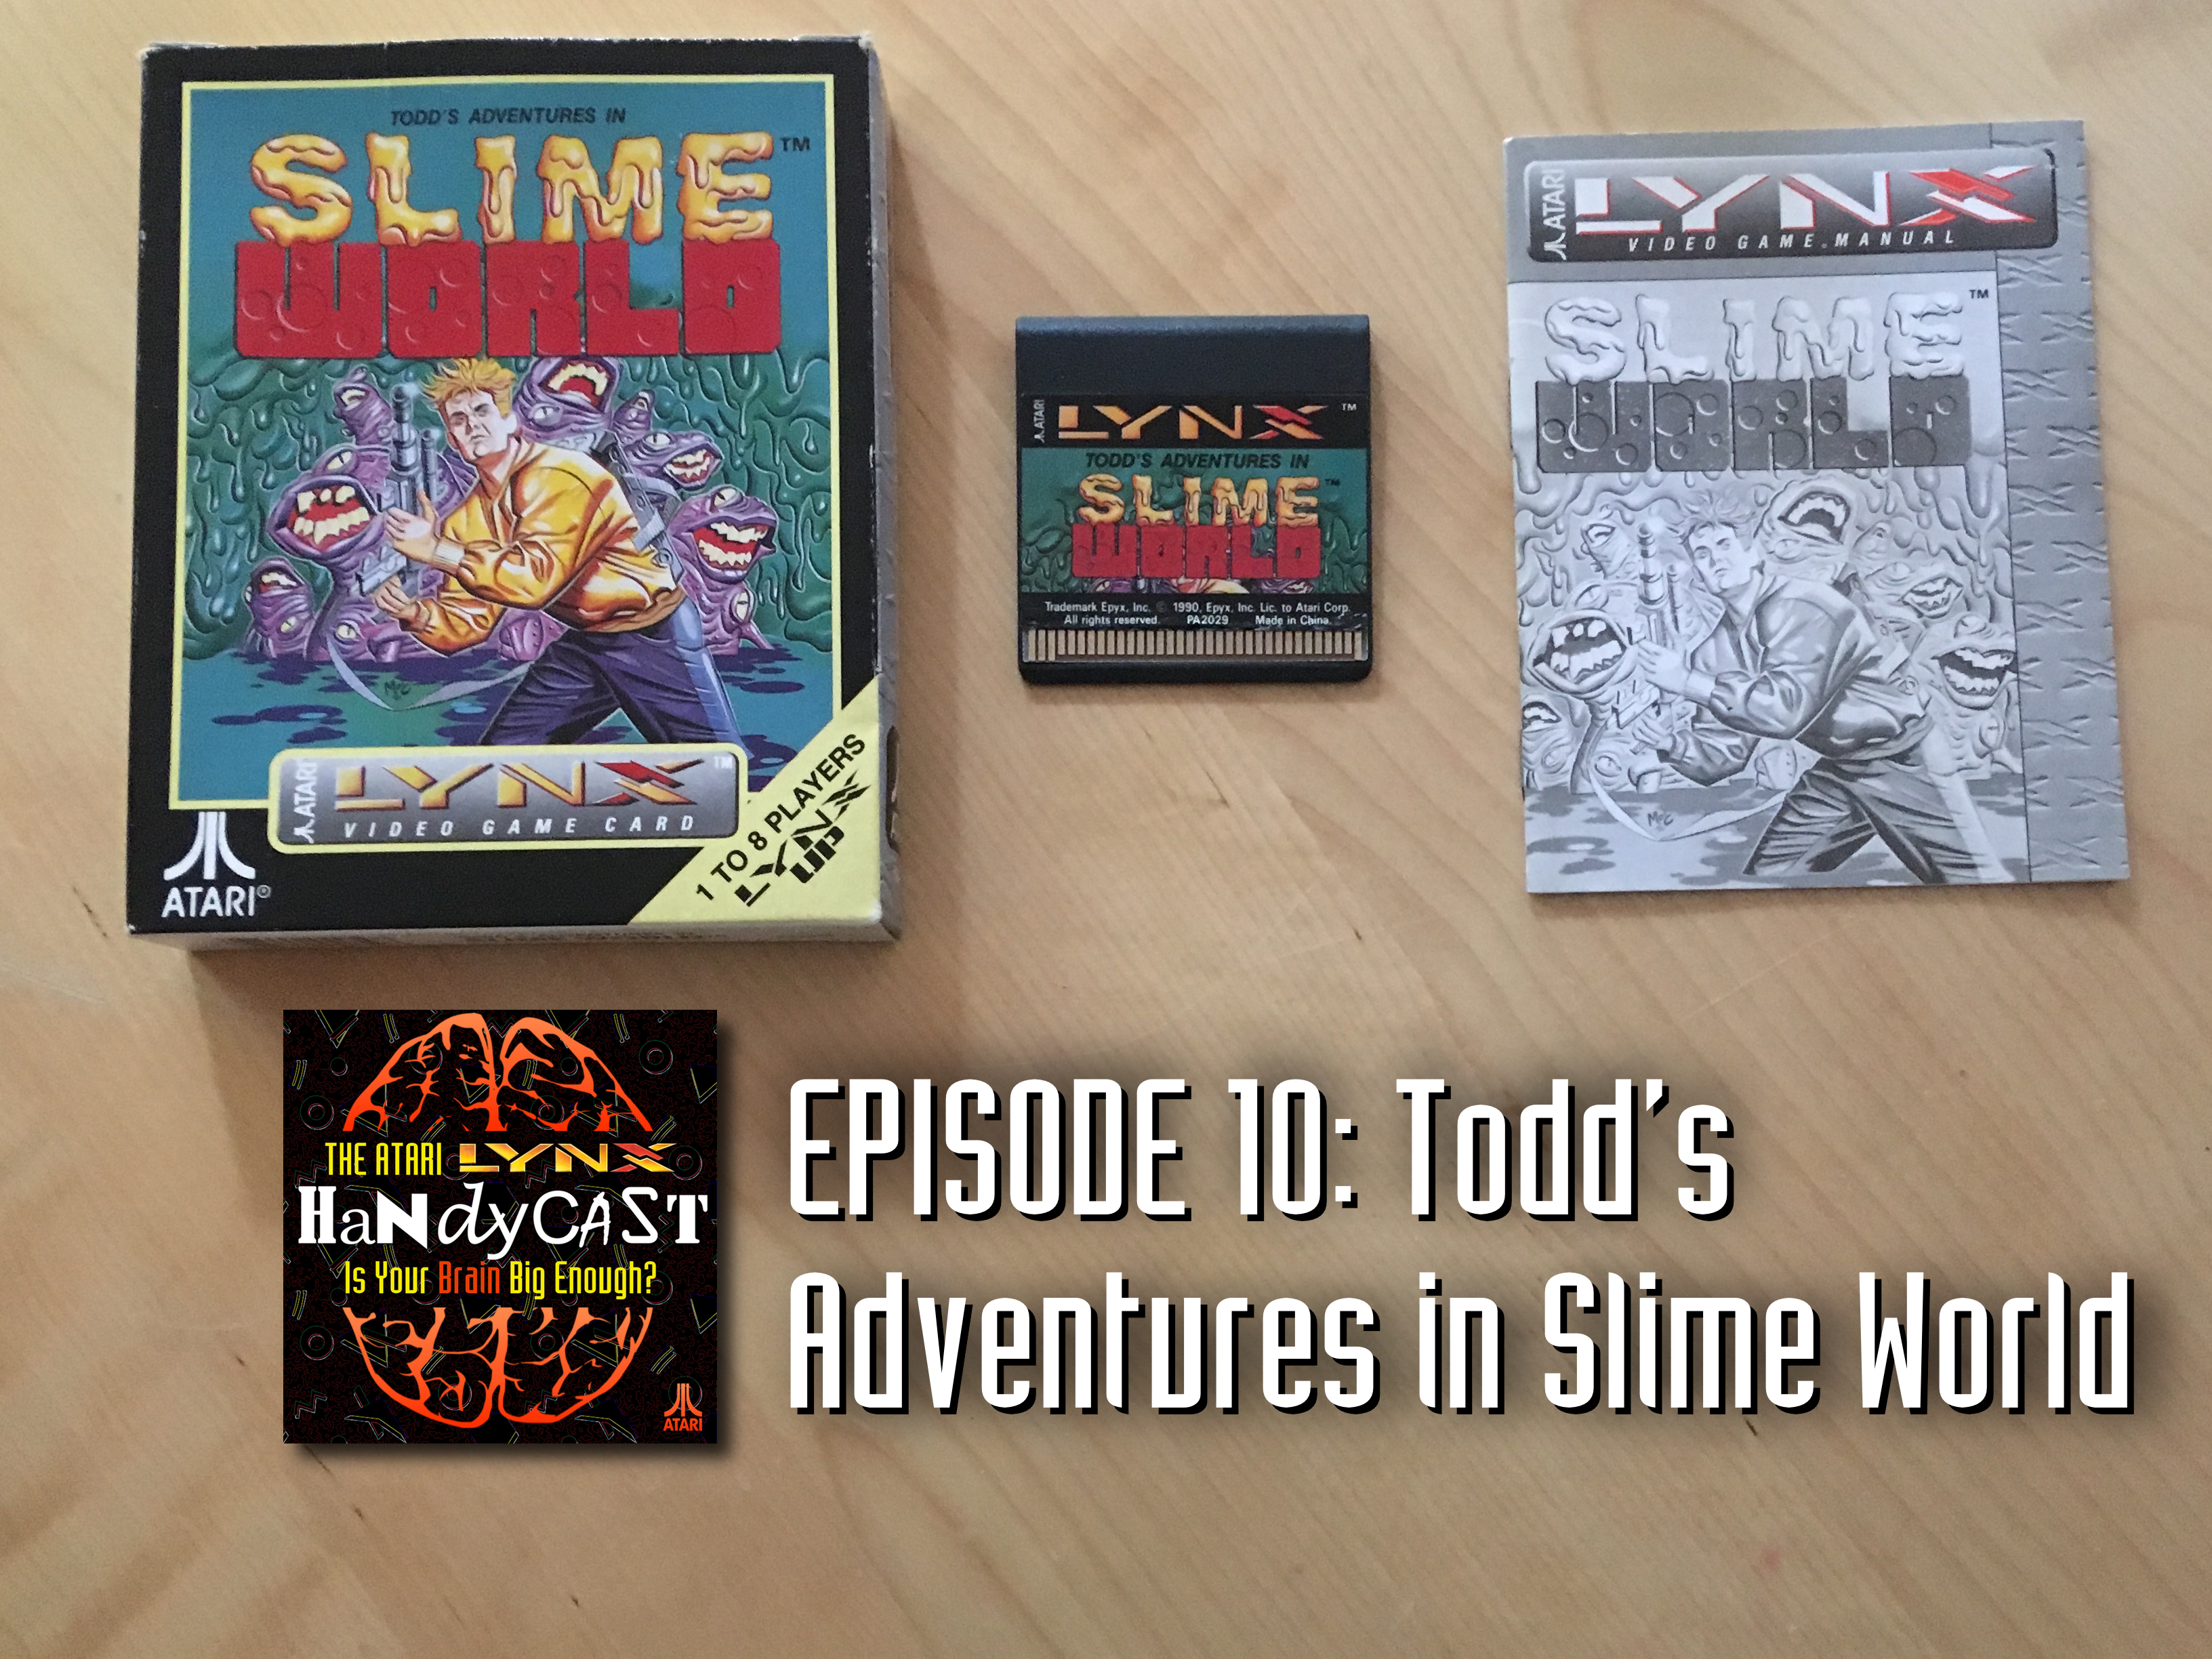 EPISODE 10: Todd's Adventures in Slime World – The Atari